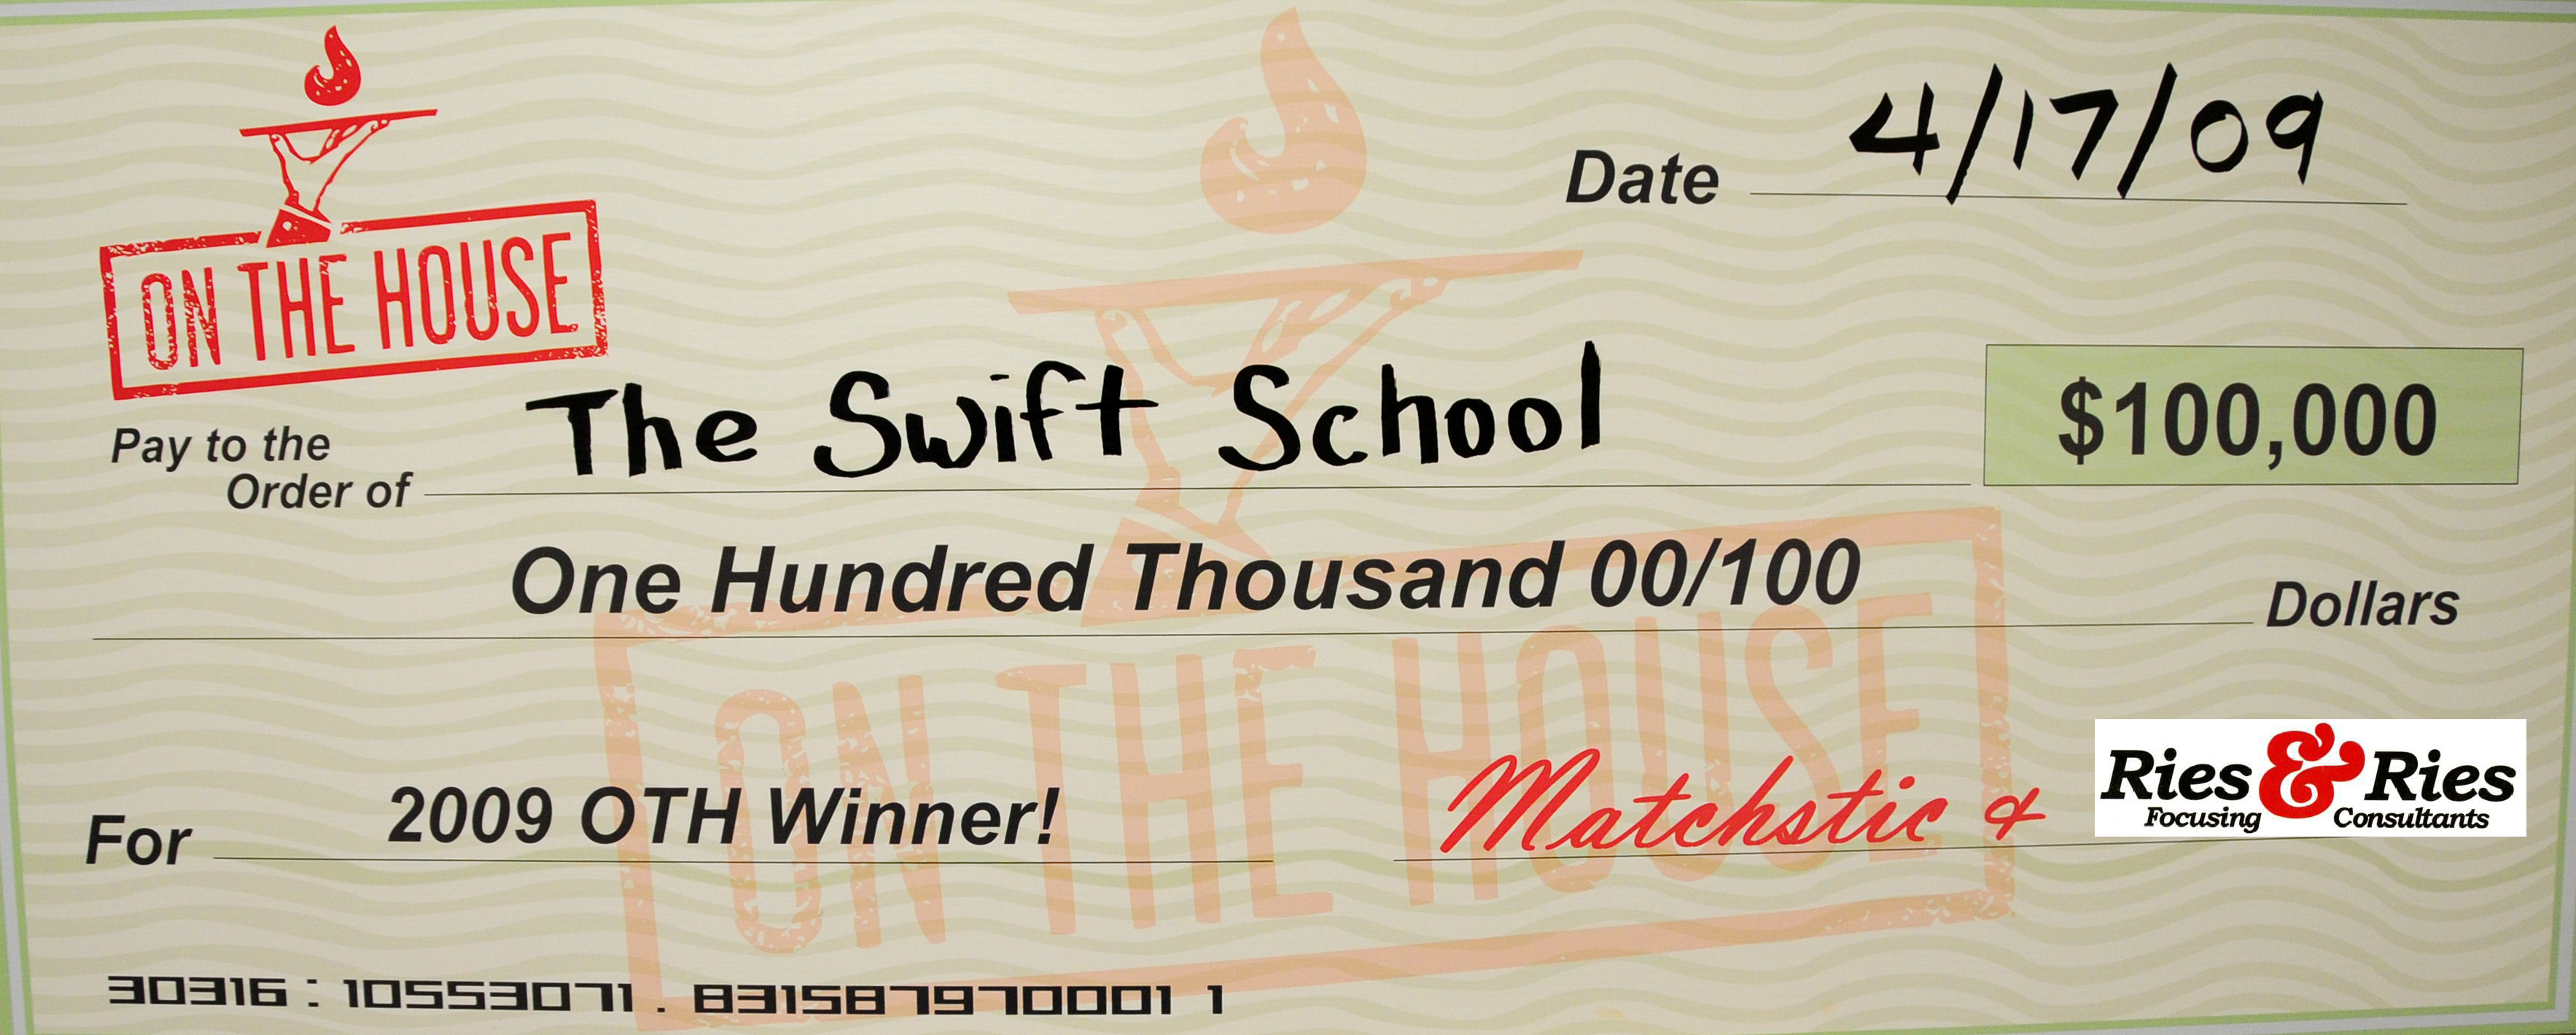 Winning The $100,000 On The House Marketing Make Over Is Just What Swift  Needs To Get There.